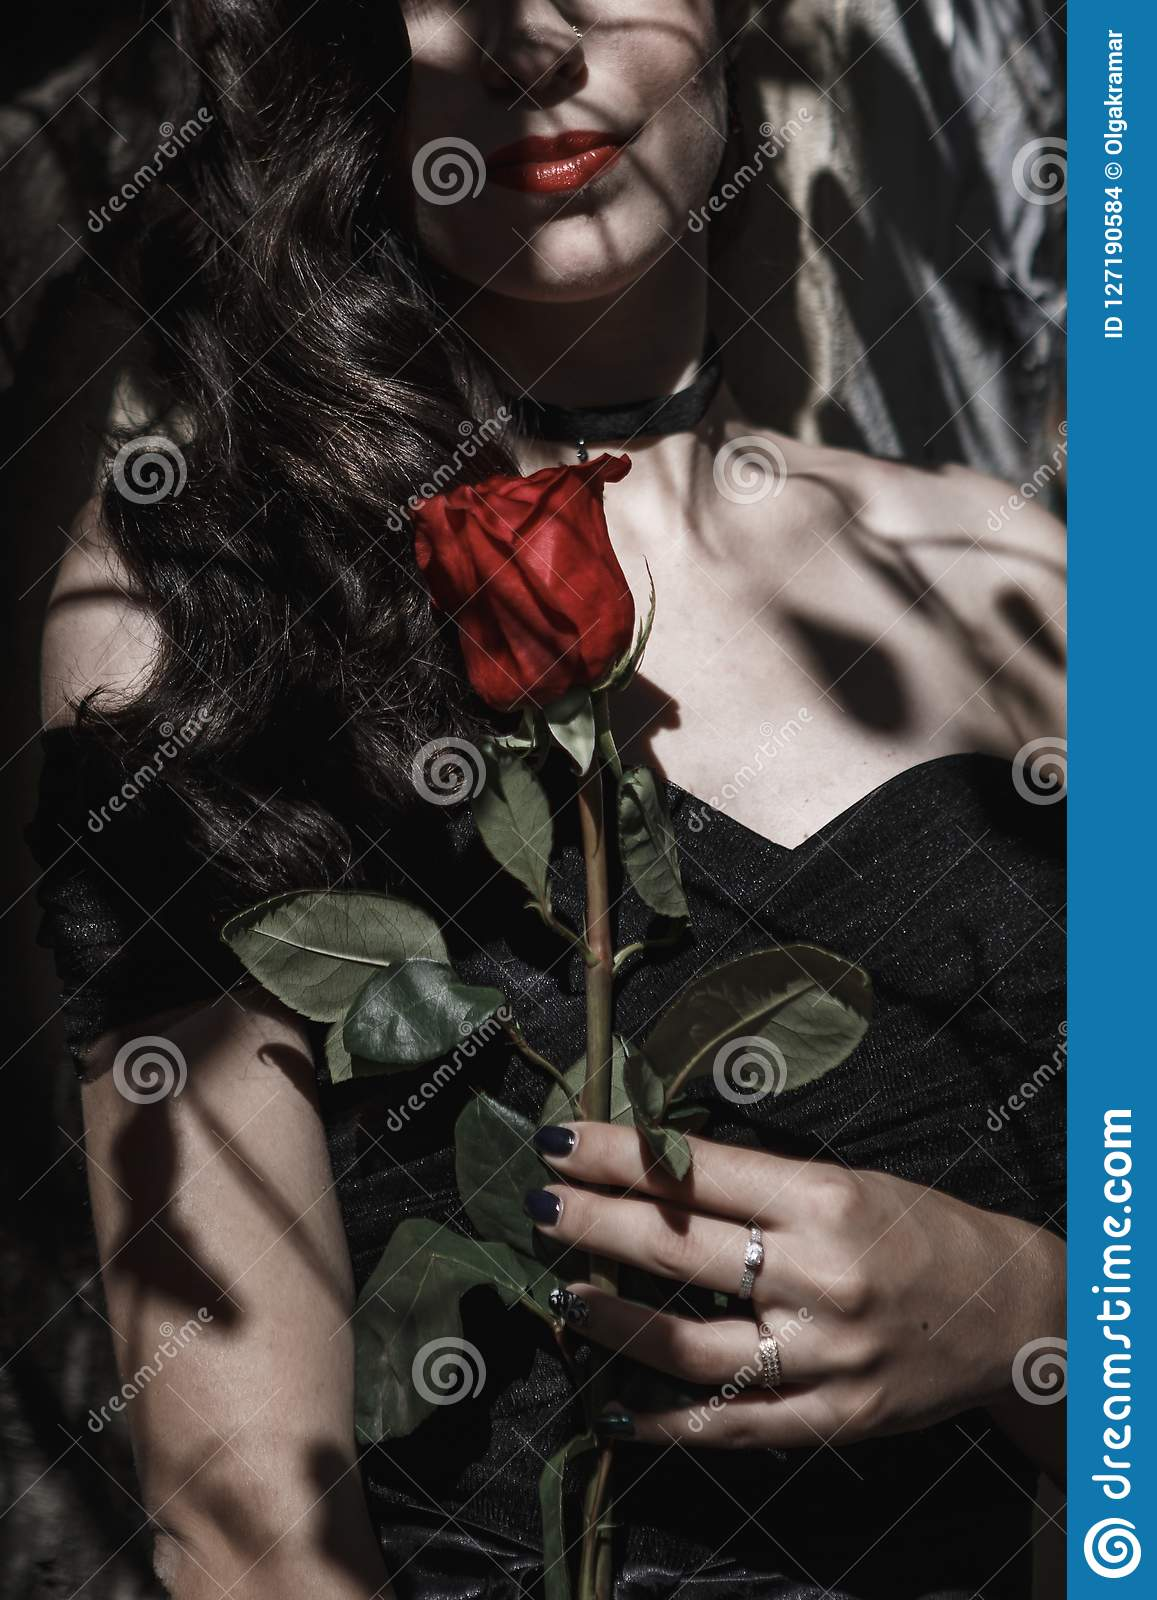 A girl in a black dress with red lips and a red rose. Black shadow patterns on the face.